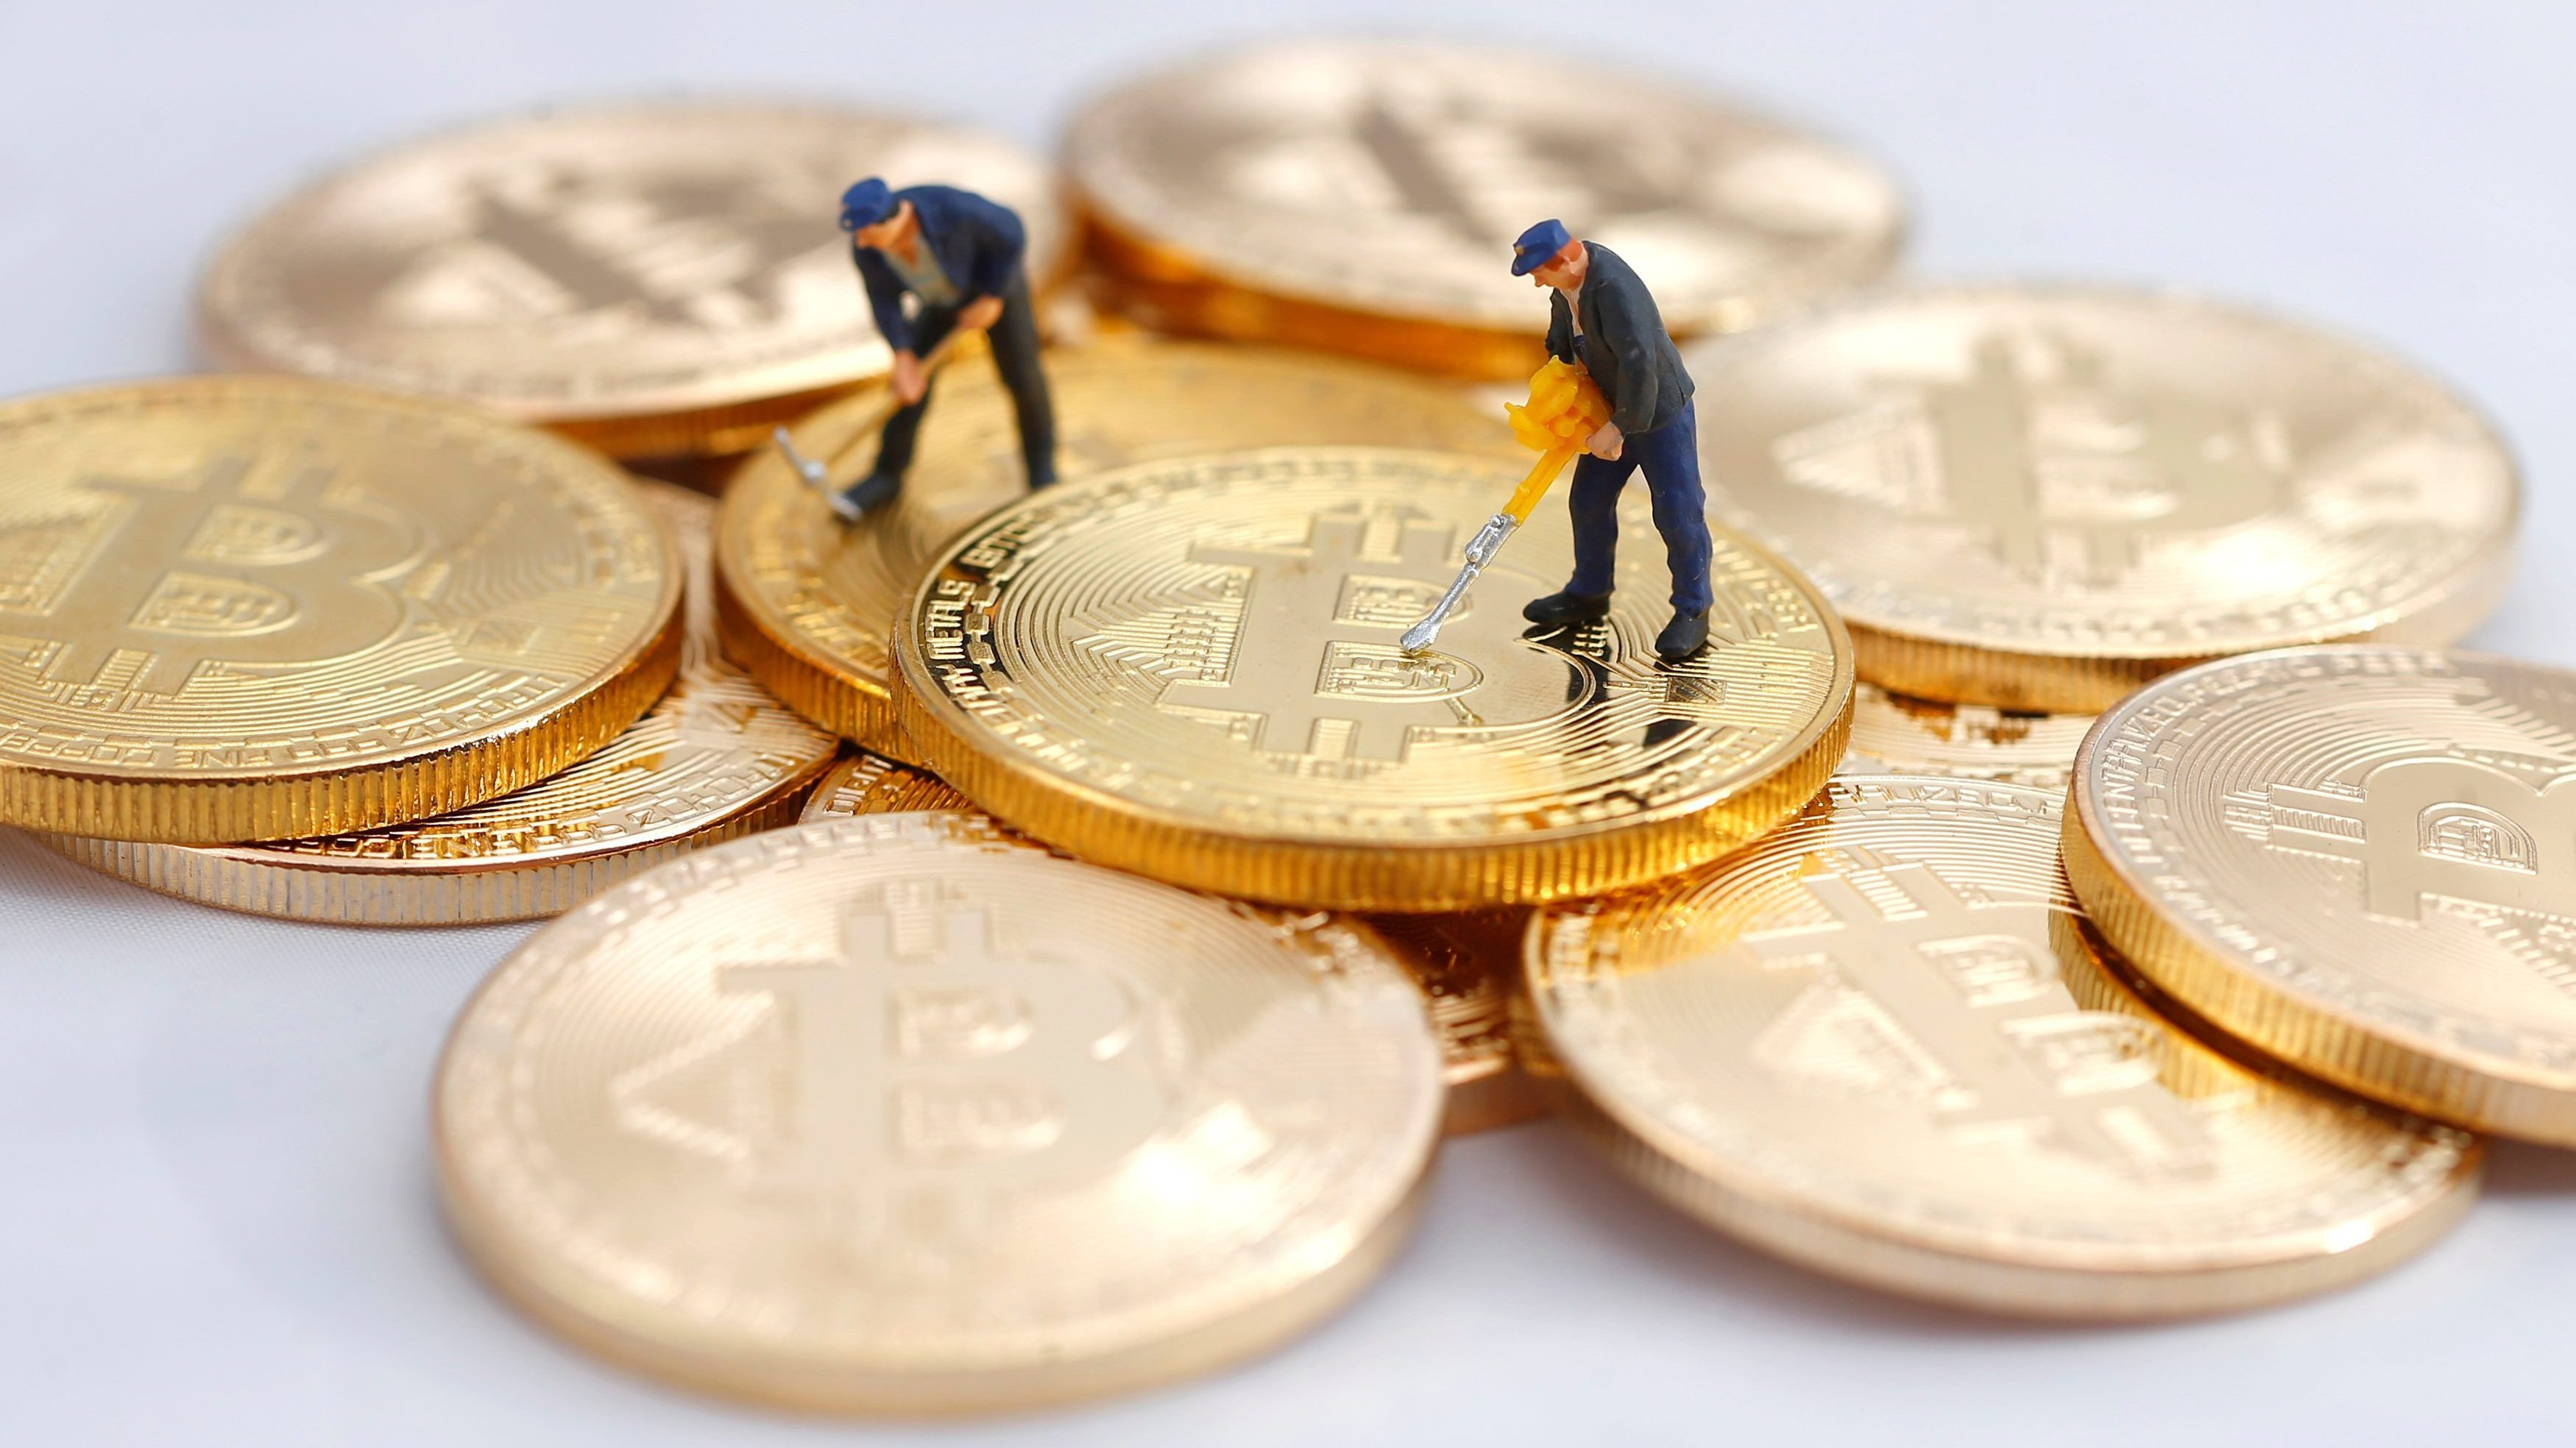 Small toy figures are seen on representations of the Bitcoin virtual currency in this illustration picture, December 26, 2017.